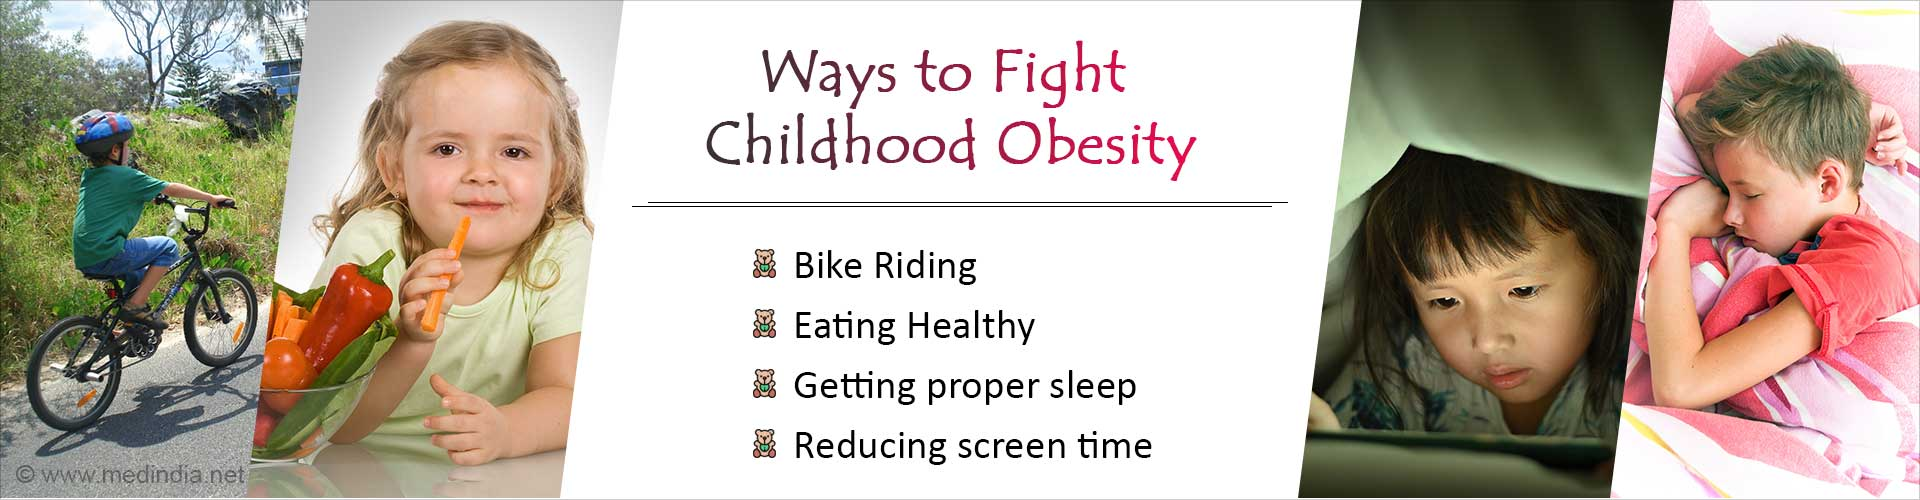 Ways to Combat Childhood Obesity During the COVID-19 Lockdown